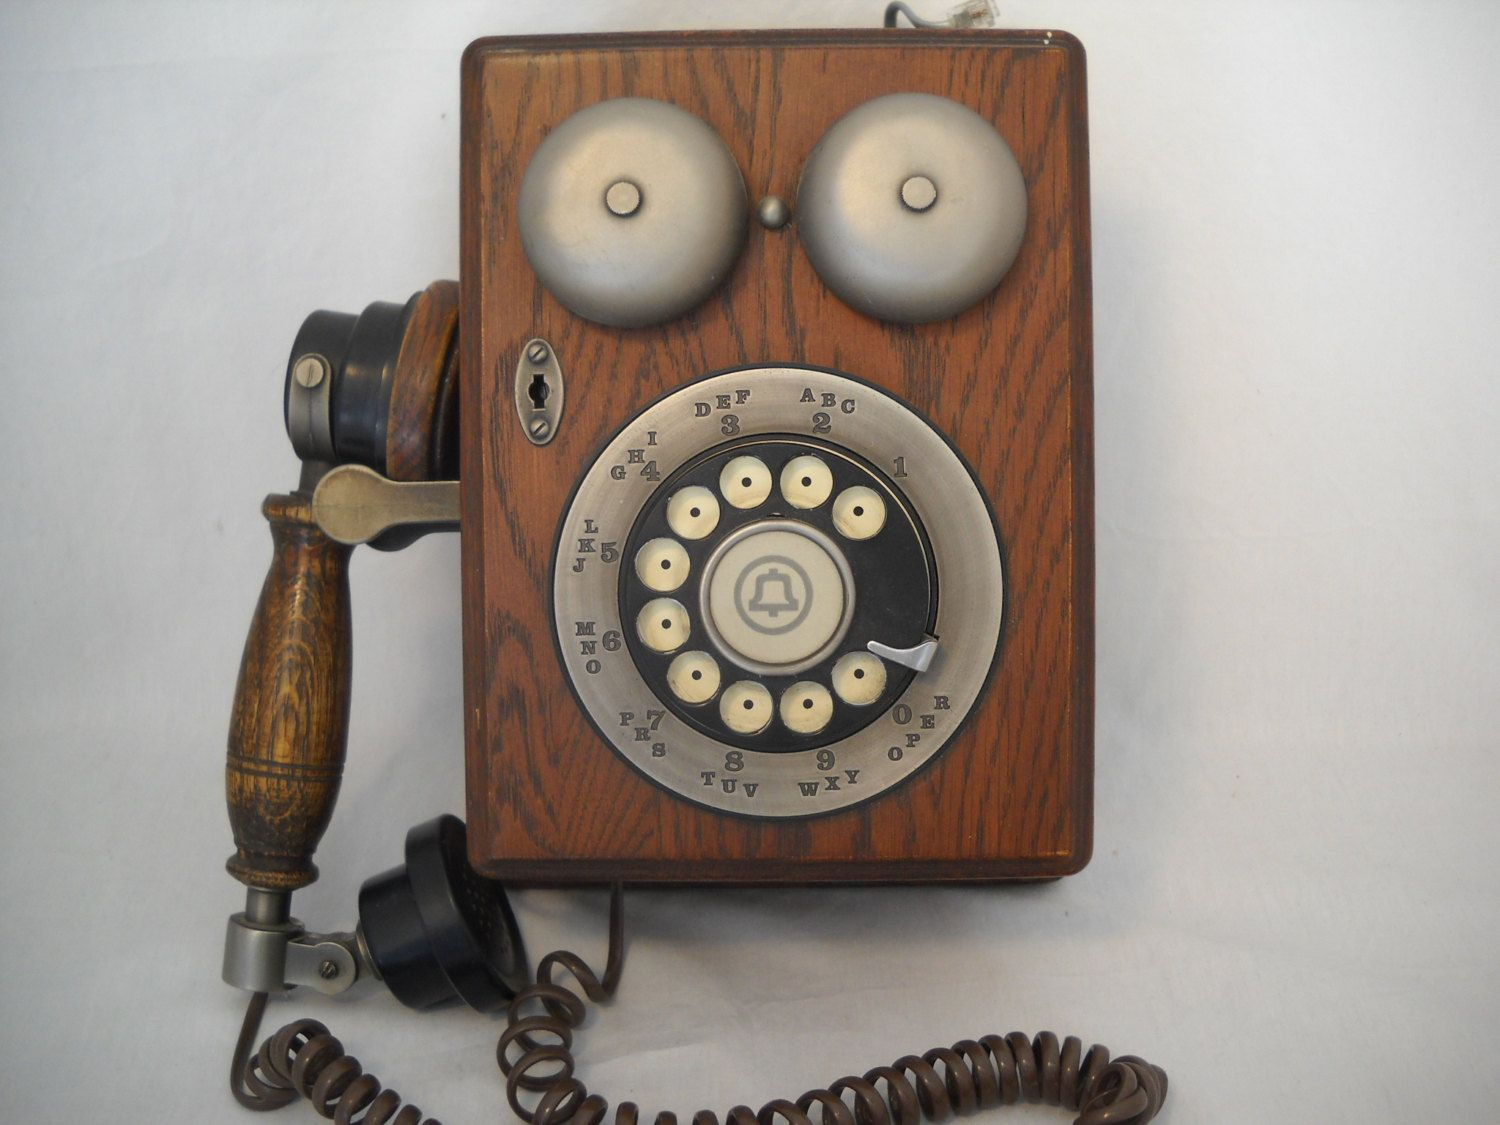 Vintage Telephone Wiring Furthermore Antique Hand Crank Wall ... on